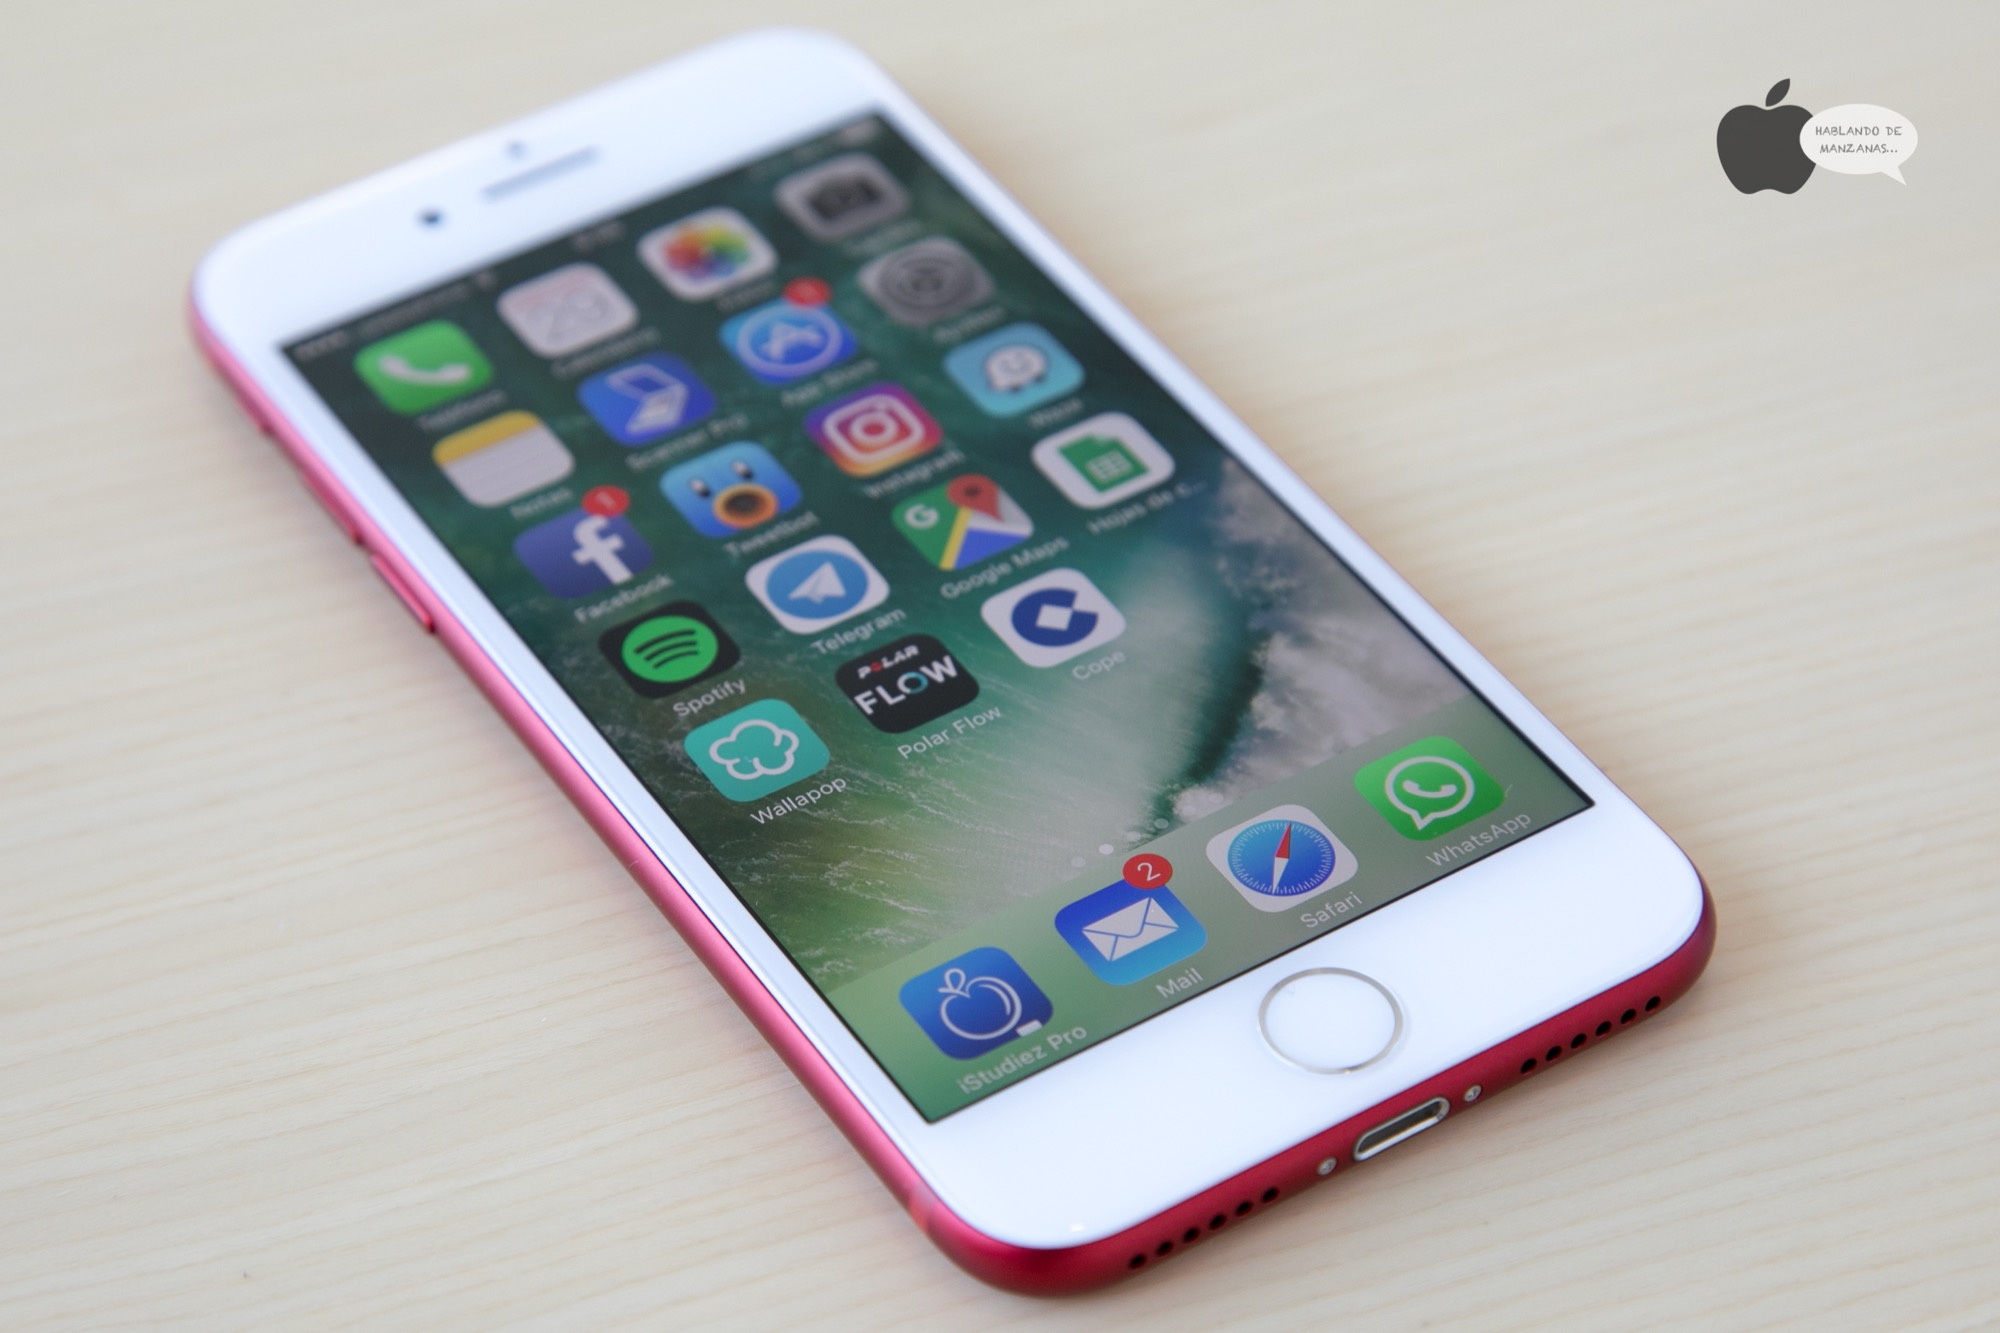 8a4dd296410 Análisis iPhone 7 Product Red, en precioso color rojo pero ...